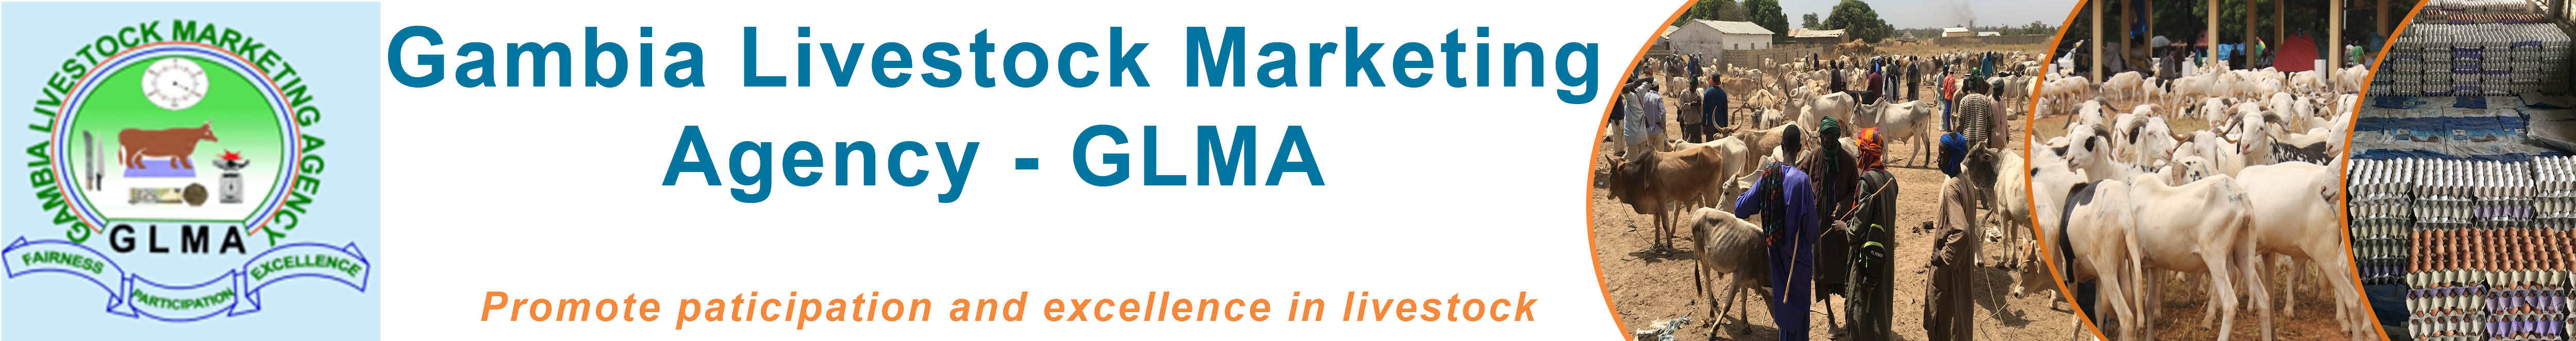 Gambia Livestock Marketing Agency